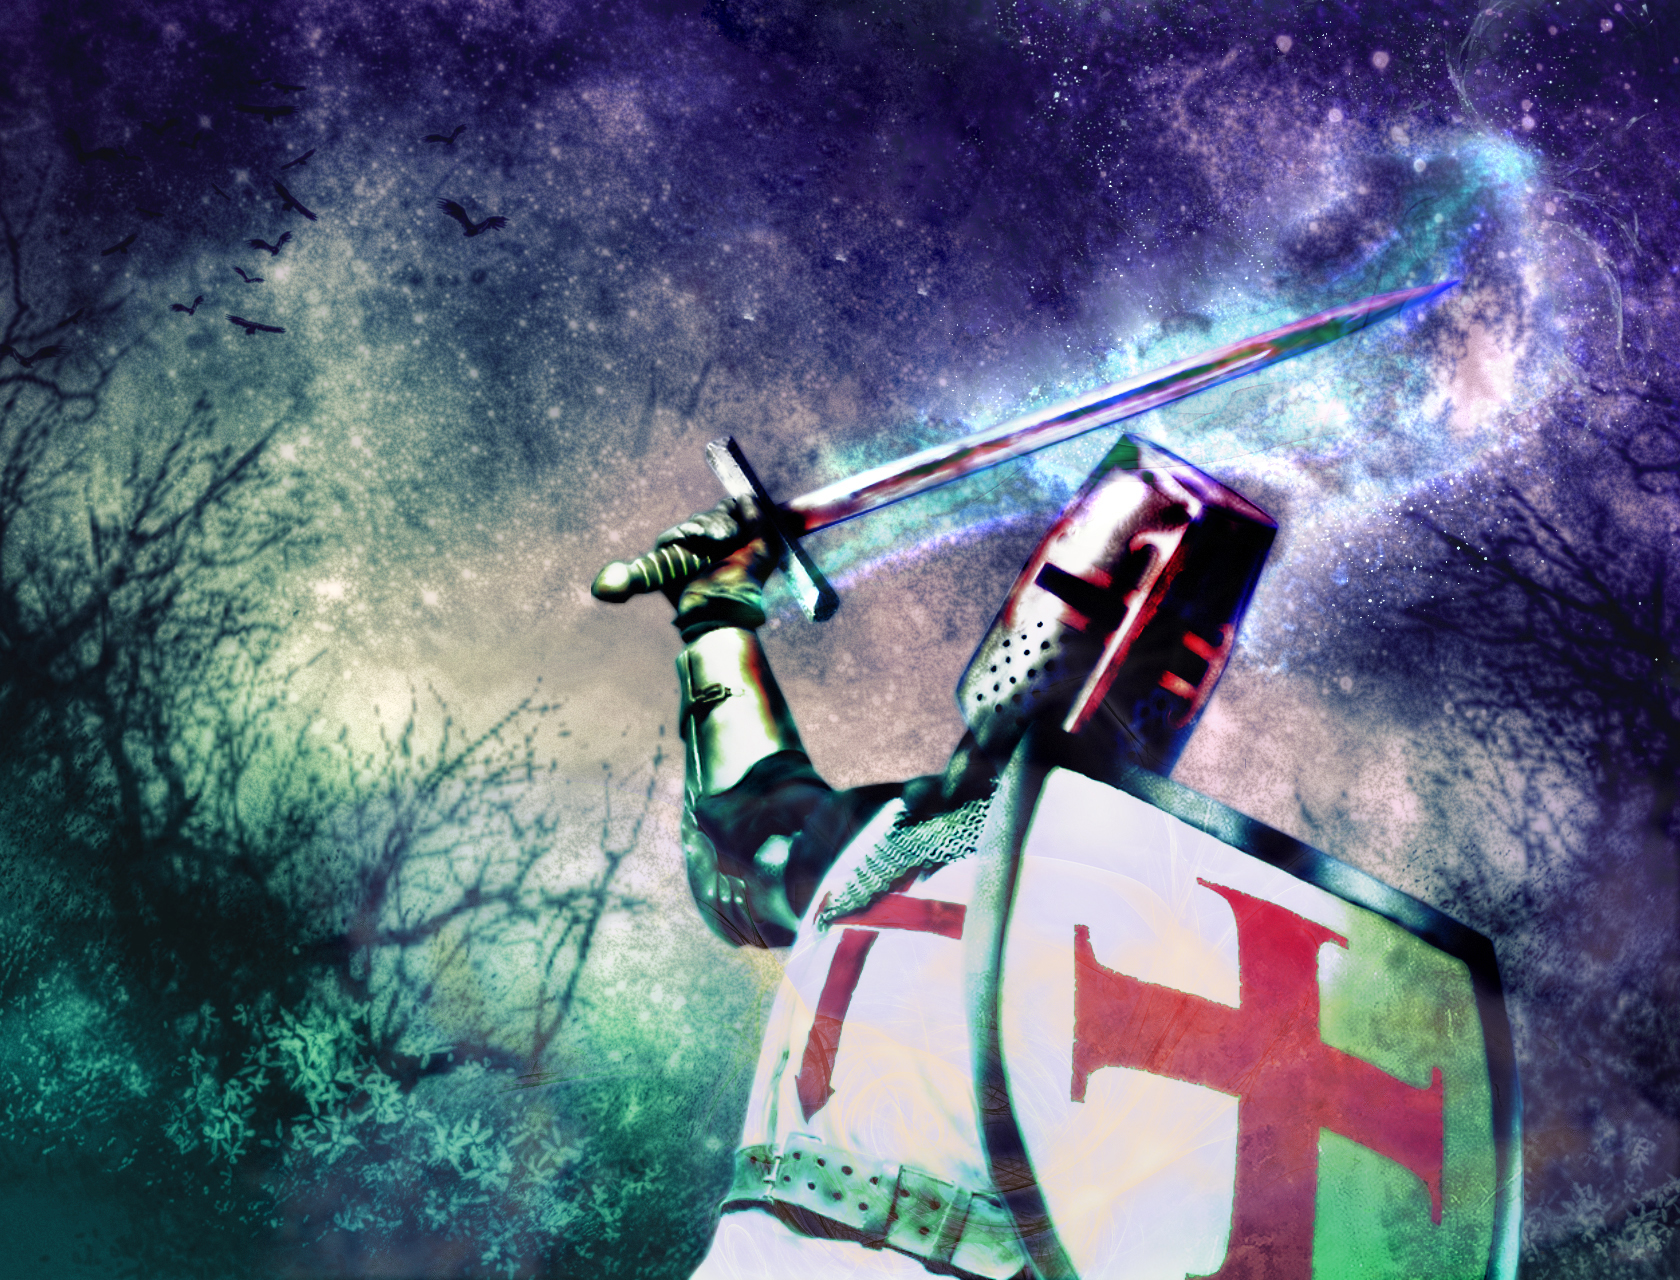 crusader wallpapers pictures photos - photo #22